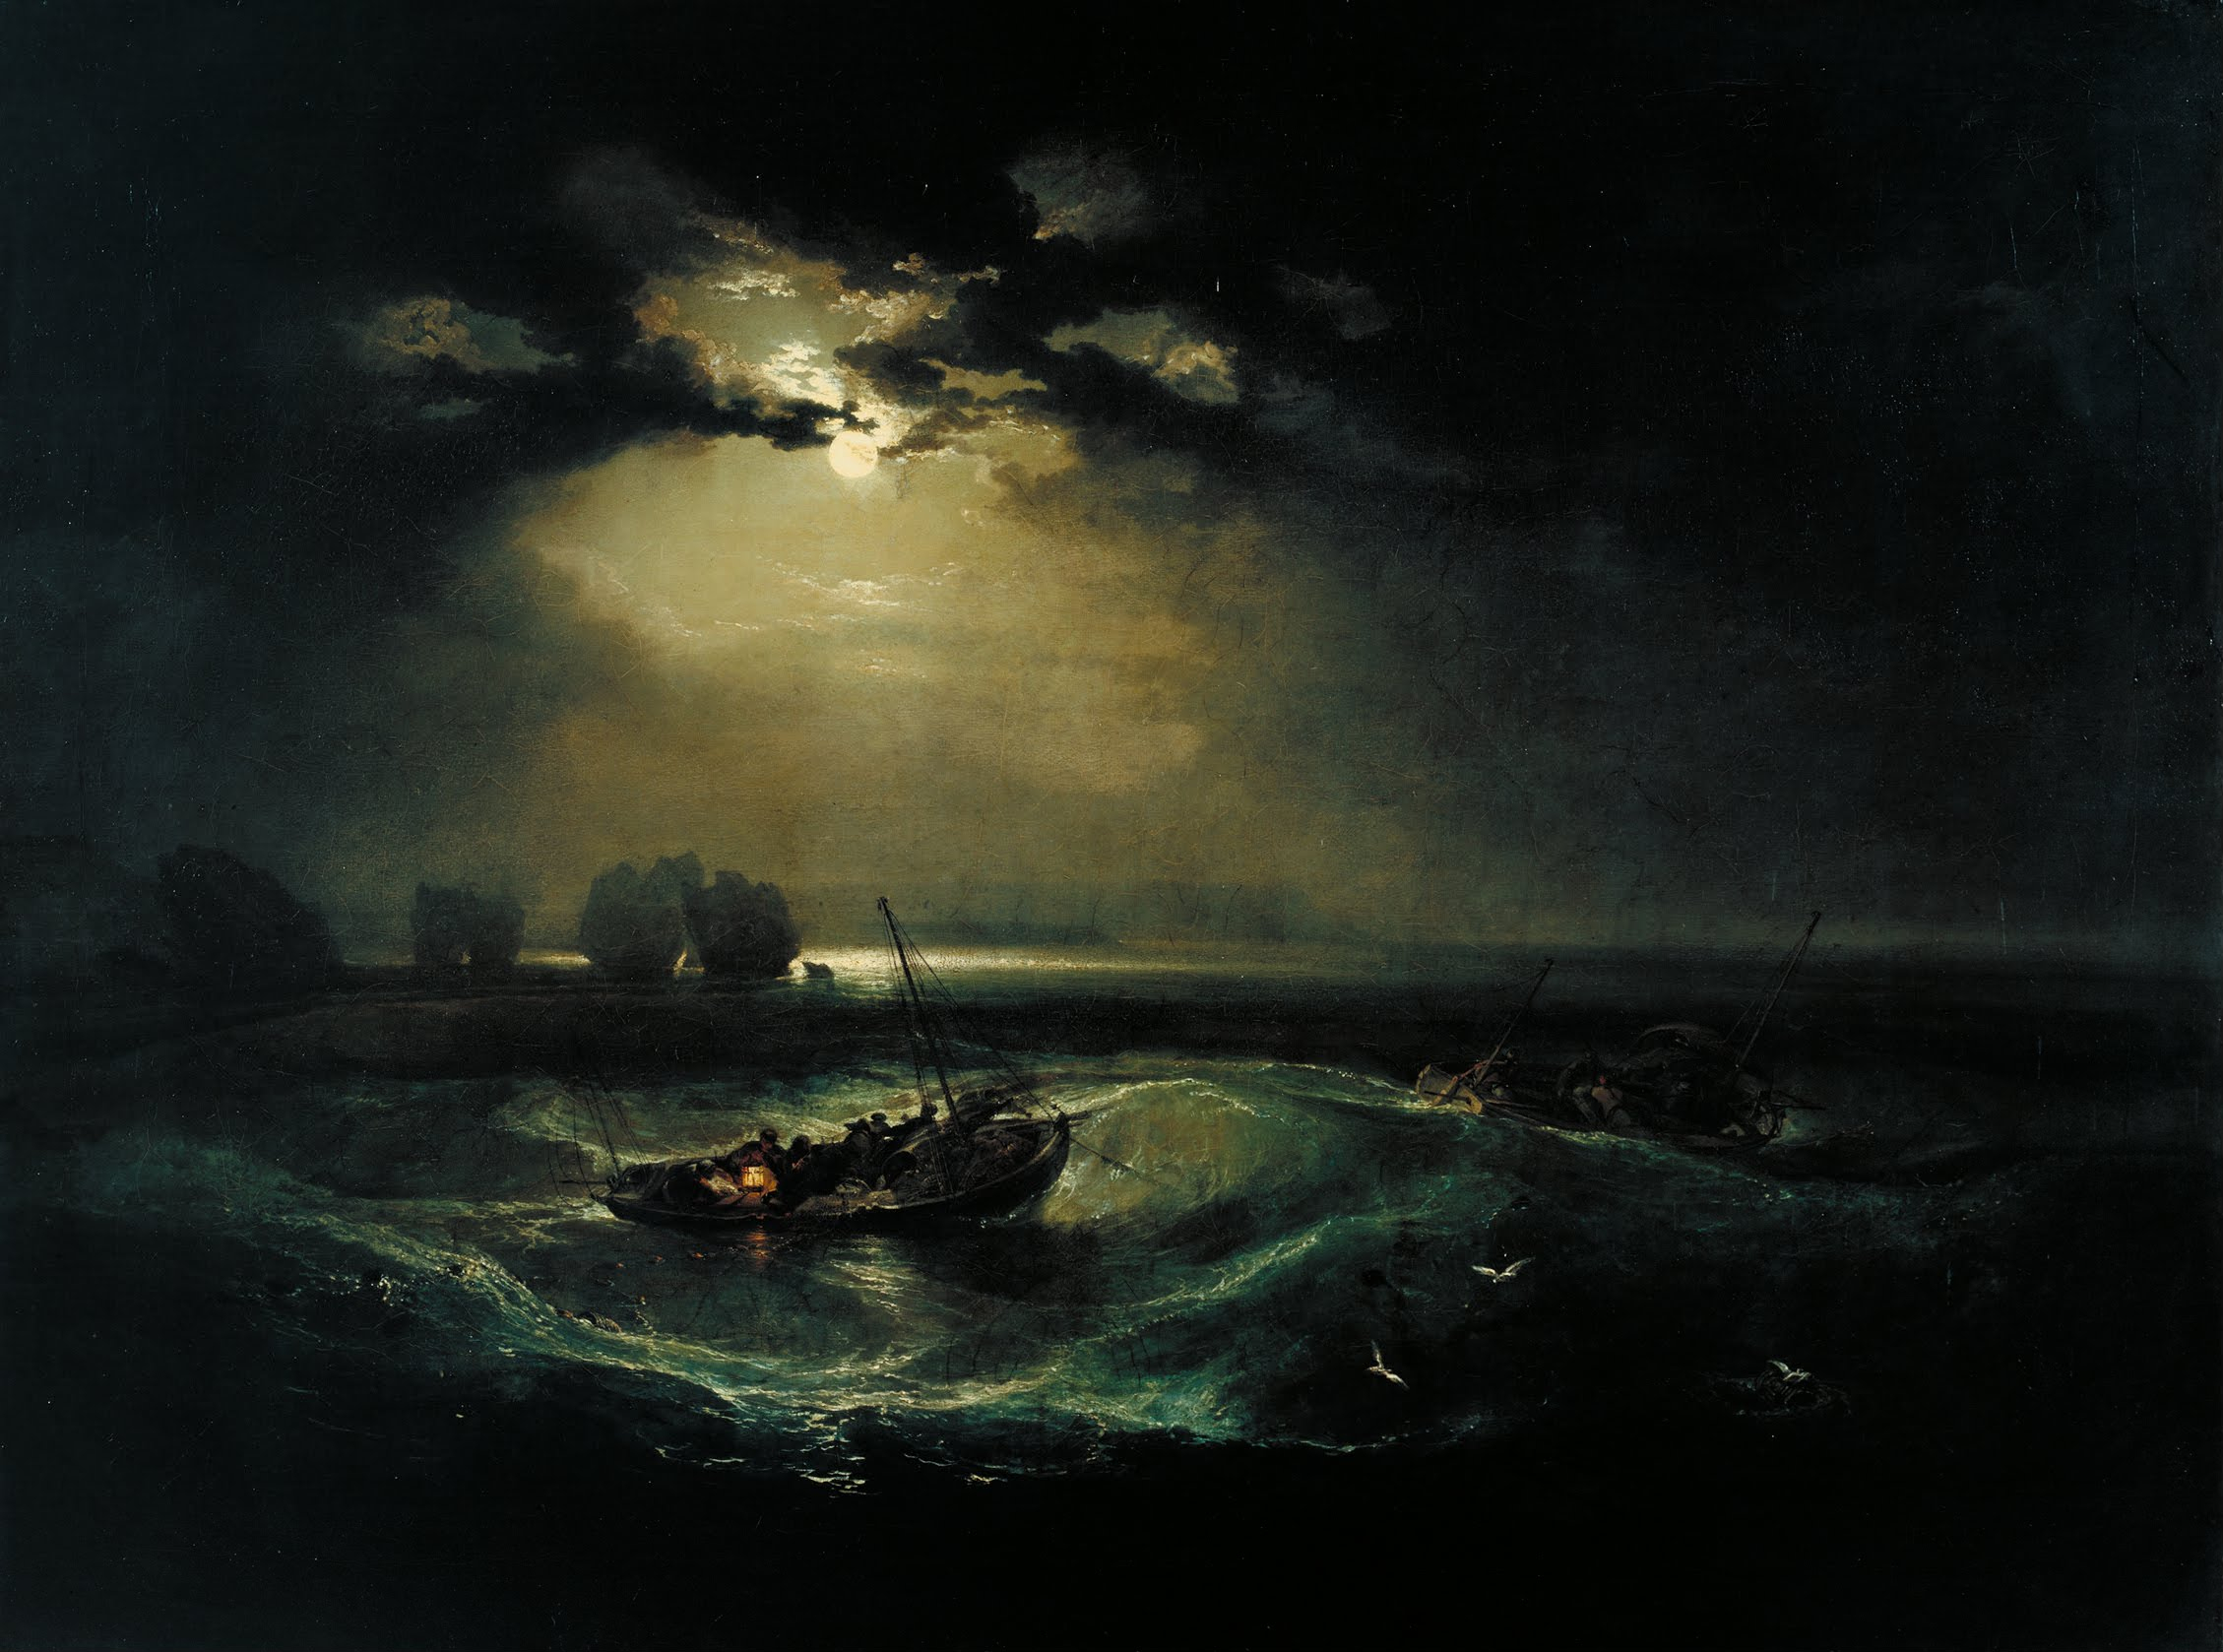 http://upload.wikimedia.org/wikipedia/commons/0/0d/Joseph_Mallord_William_Turner_-_Fishermen_at_Sea_-_Google_Art_Project.jpg